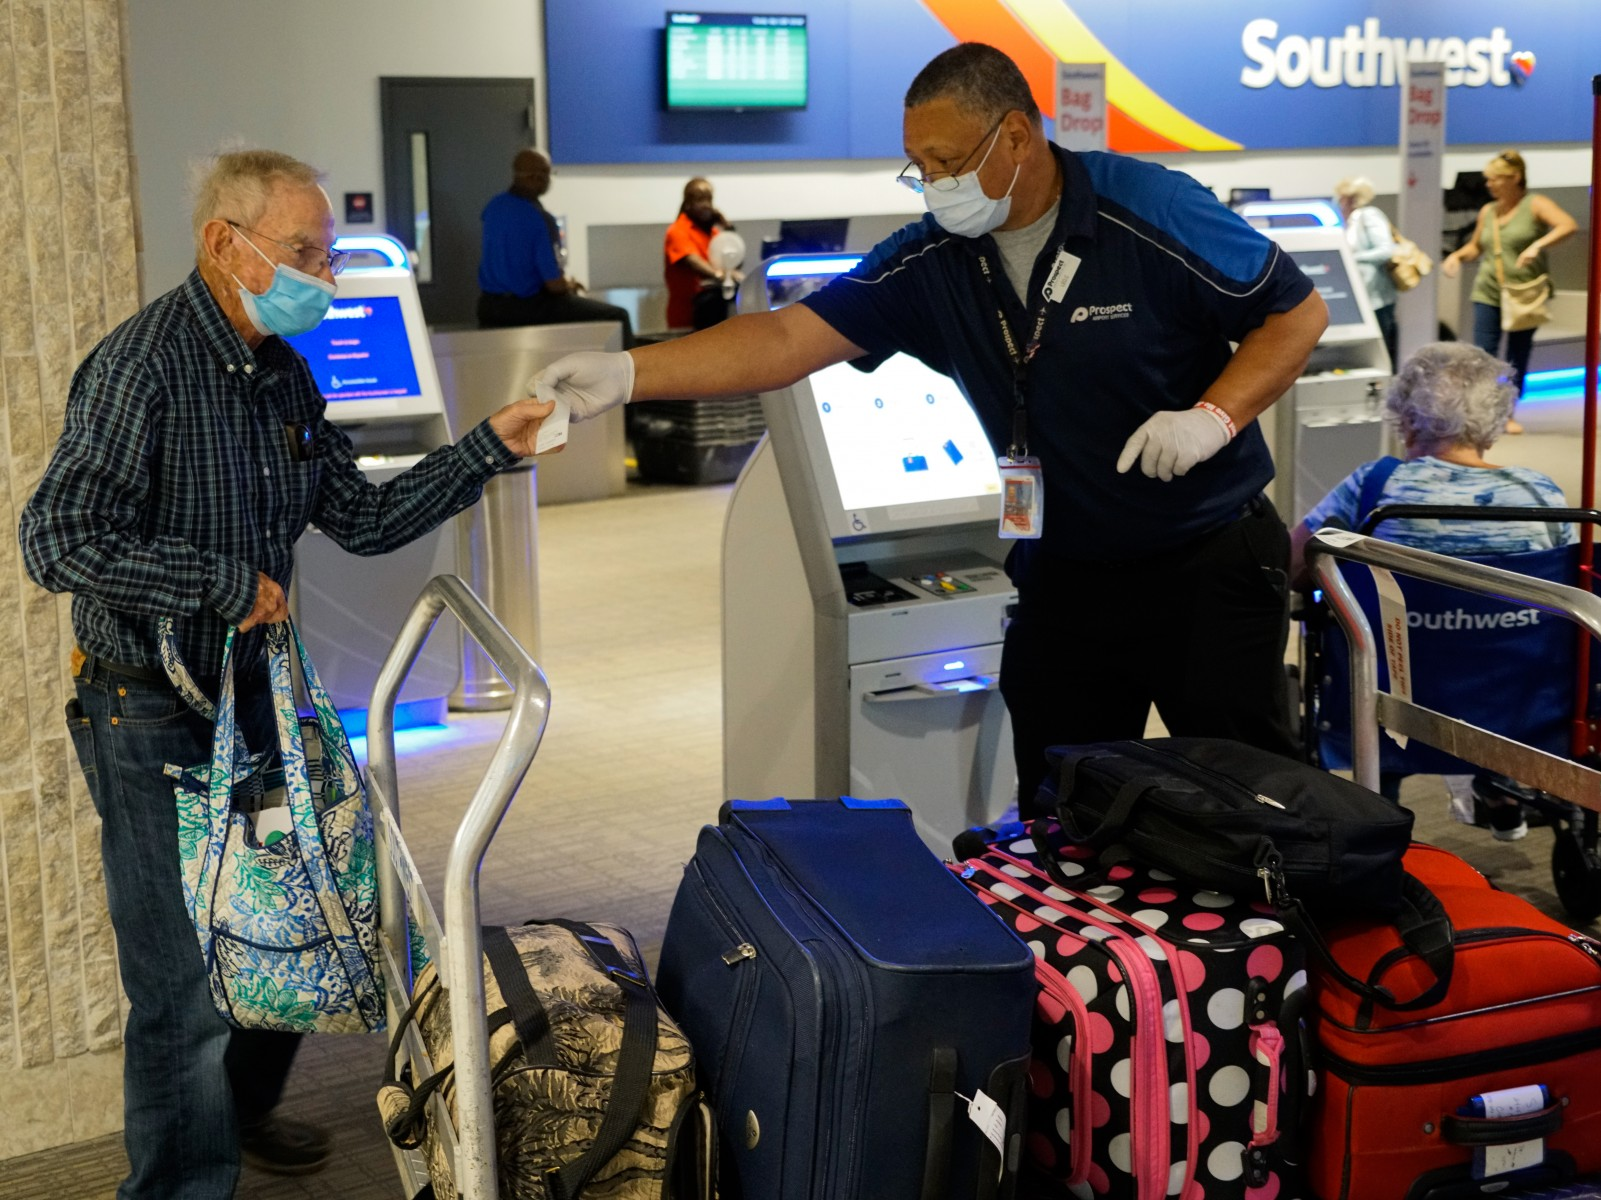 Employee assisting passenger with masks